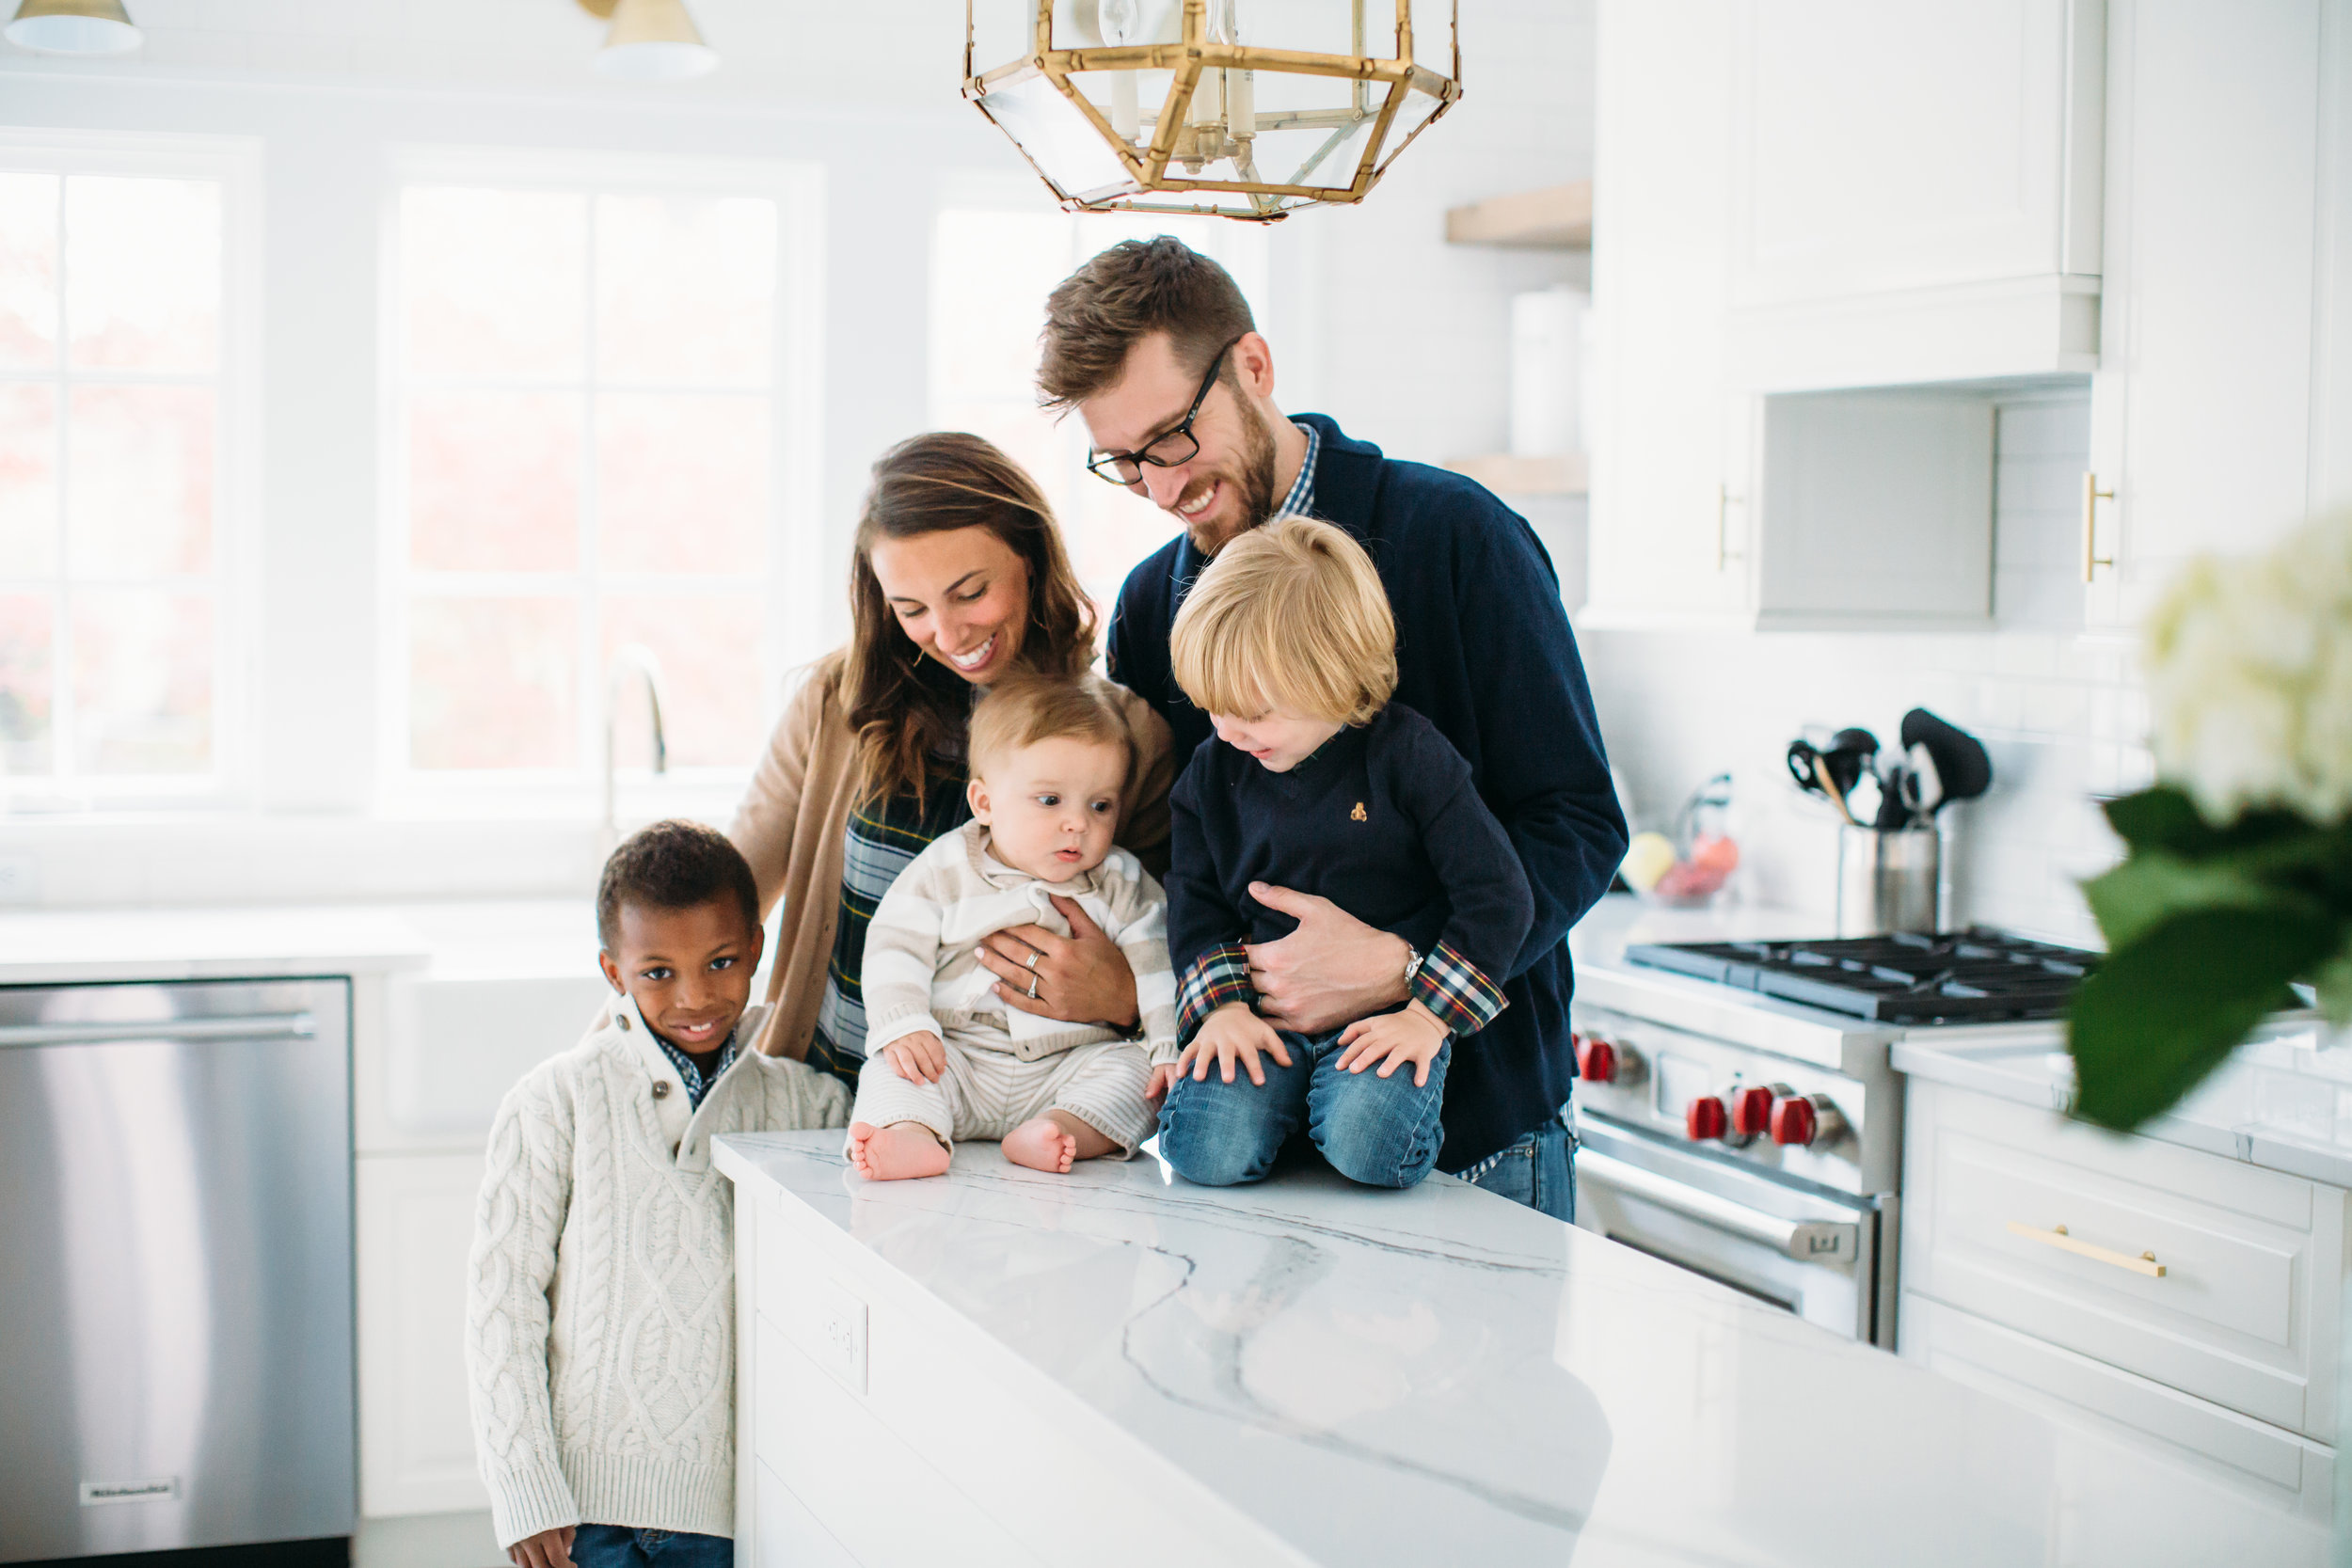 Lifestyle family photographer, photos at home, kitchen remodel